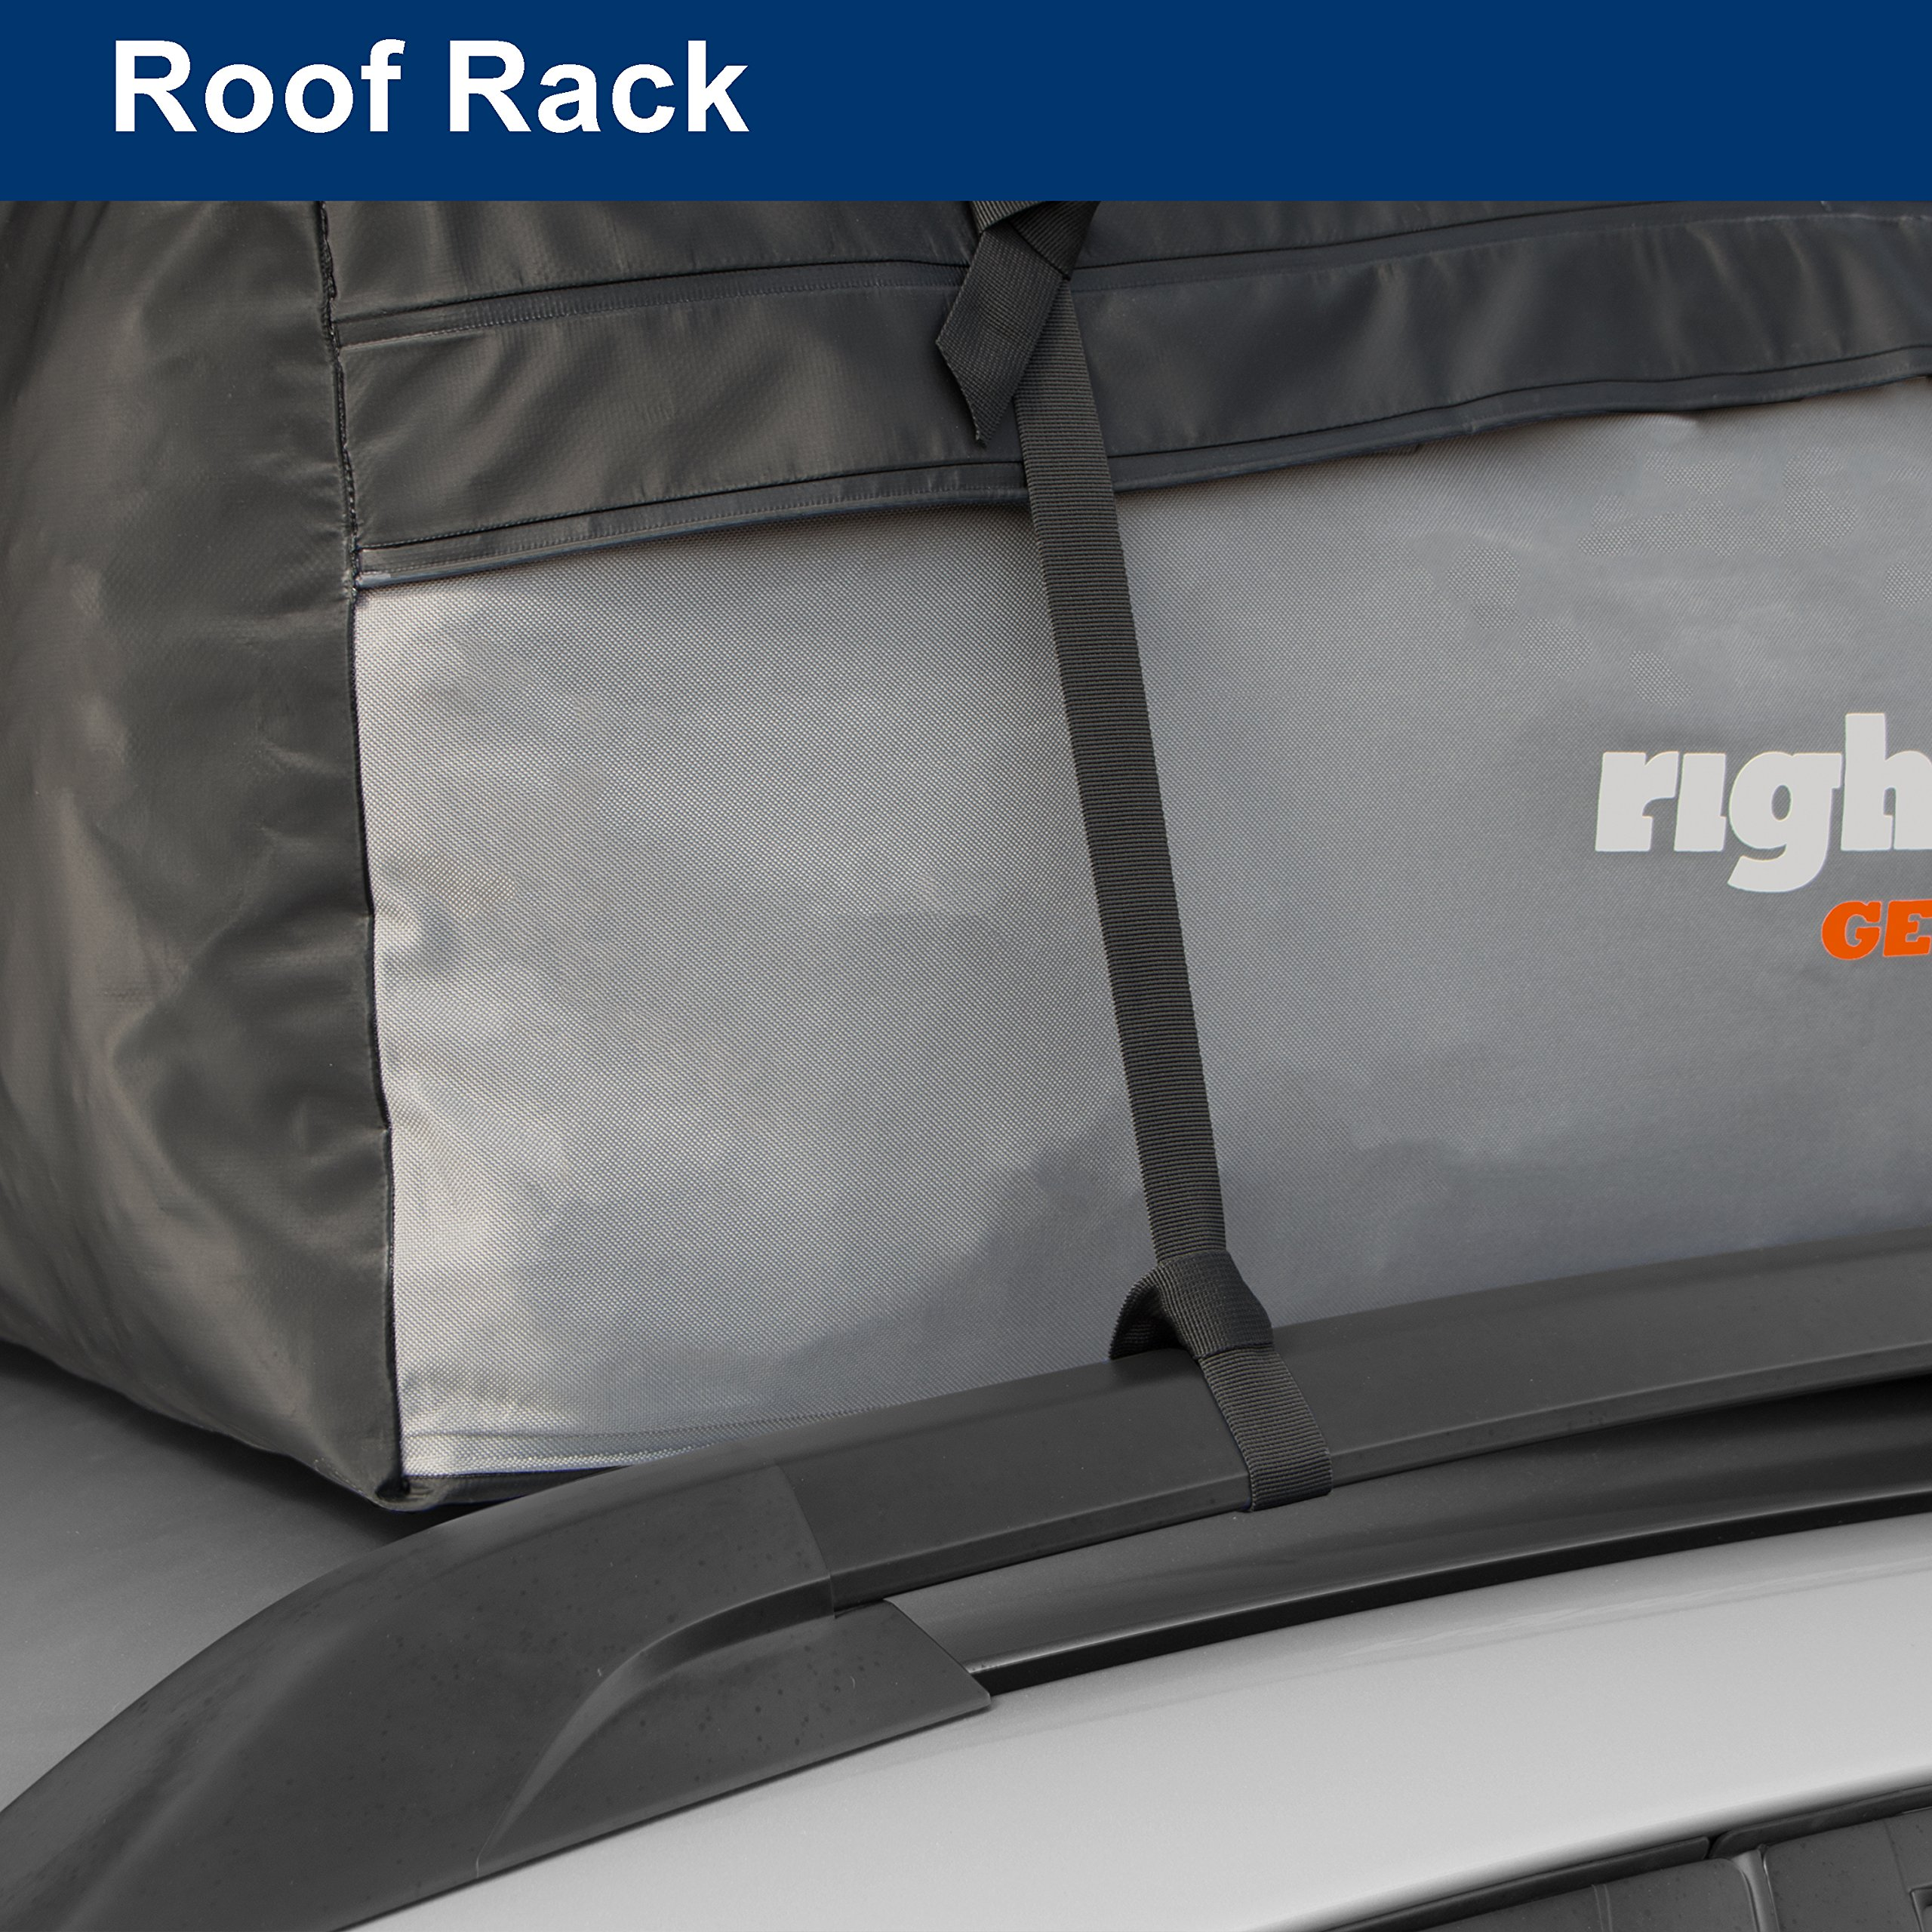 Rightline Gear 100S30 Sport 3 Car Top Carrier, 18 cu ft, Waterproof, Attaches With or Without Roof Rack by Rightline Gear (Image #5)